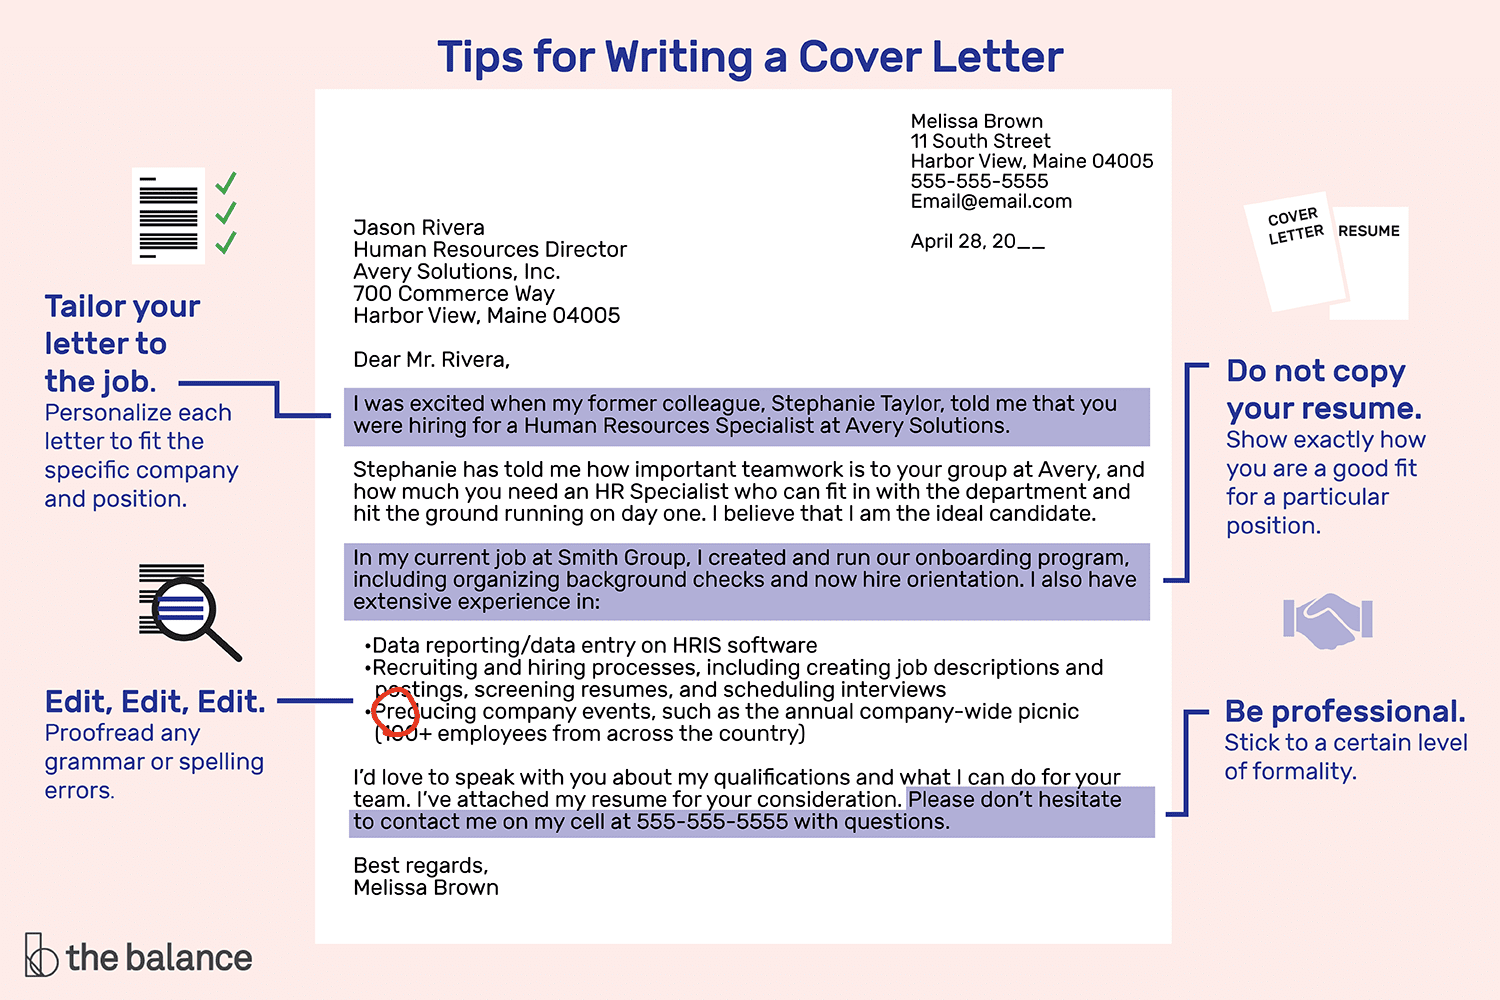 tips for writing a job application letter